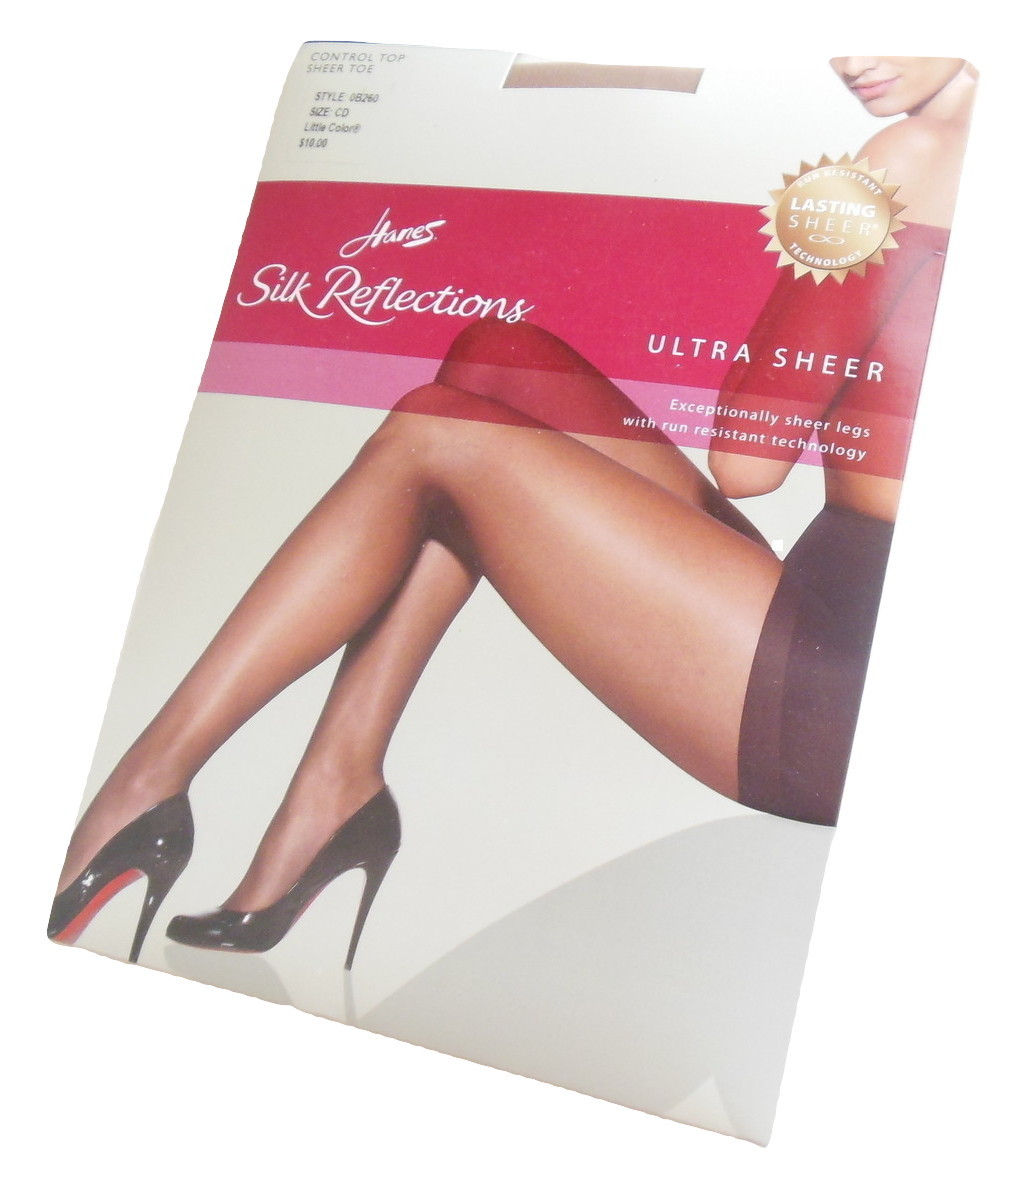 84321943b01 Hanes Silk Reflections Sheer Toe Pantyhose CD M L Little Color Run Resistant